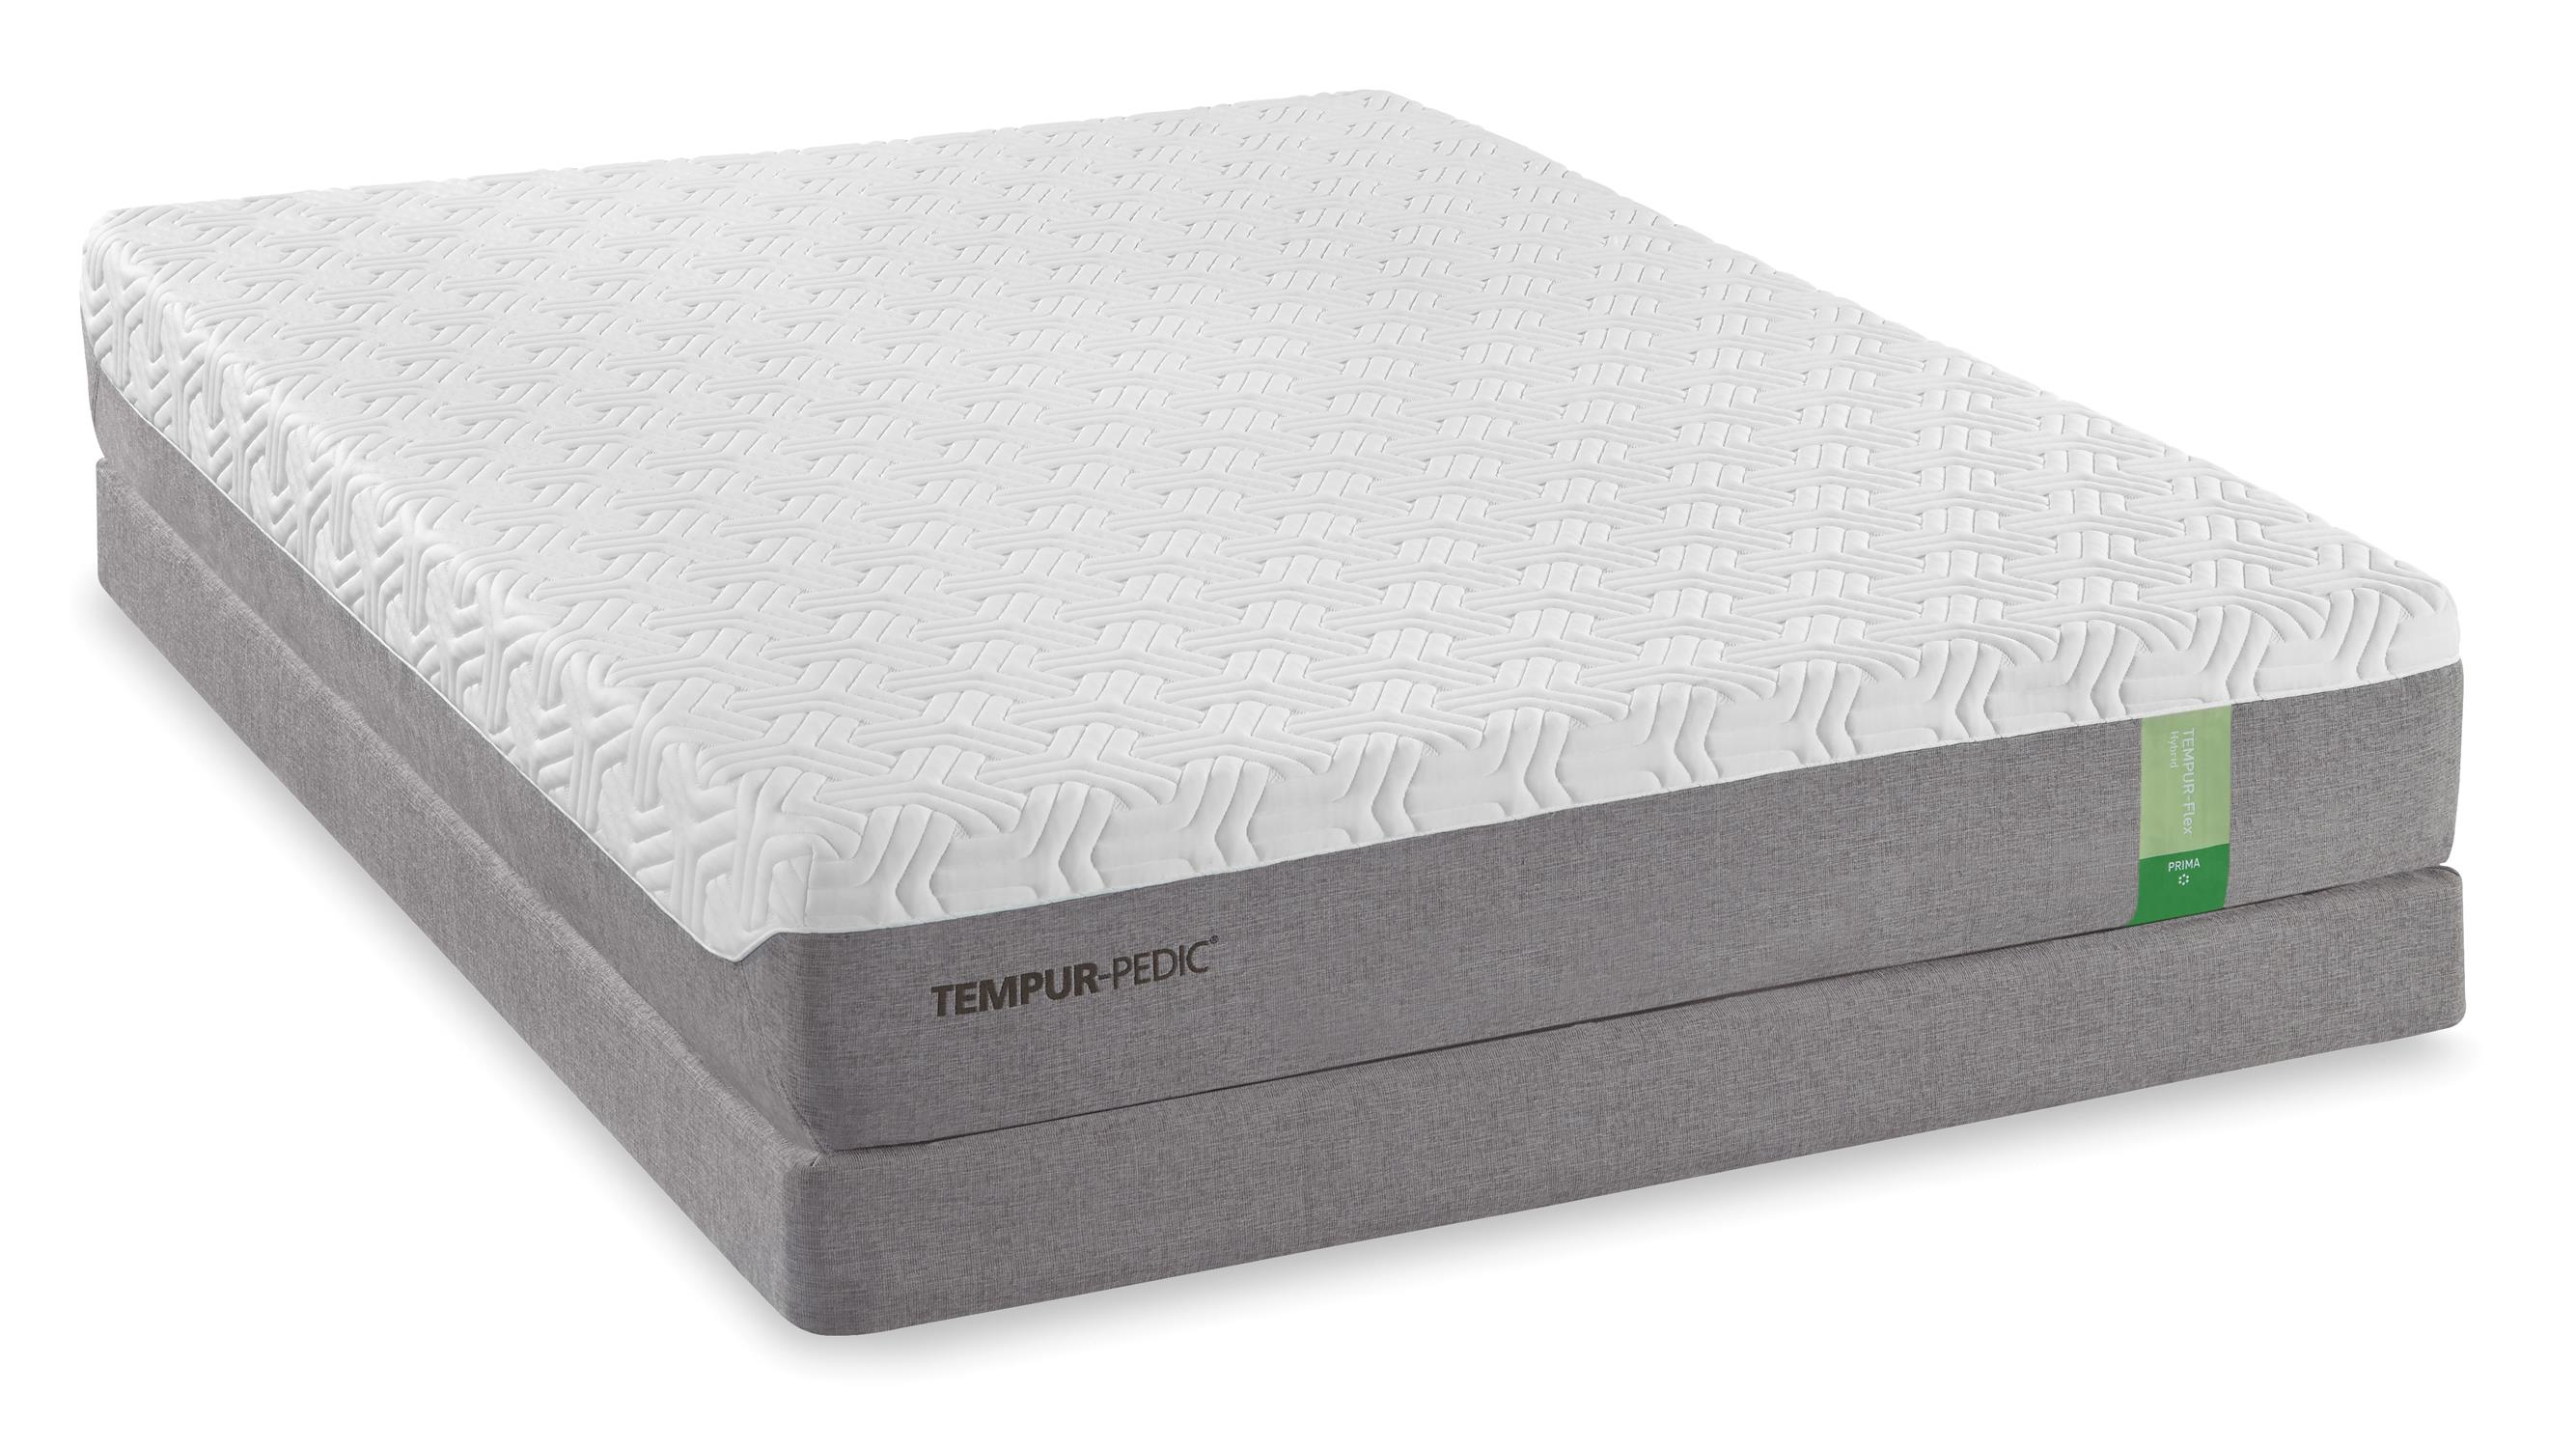 Tempur-Pedic® TEMPUR-Flex Prima Cal King Medium Firm Mattress Set - Item Number: 10115280+2x25565290